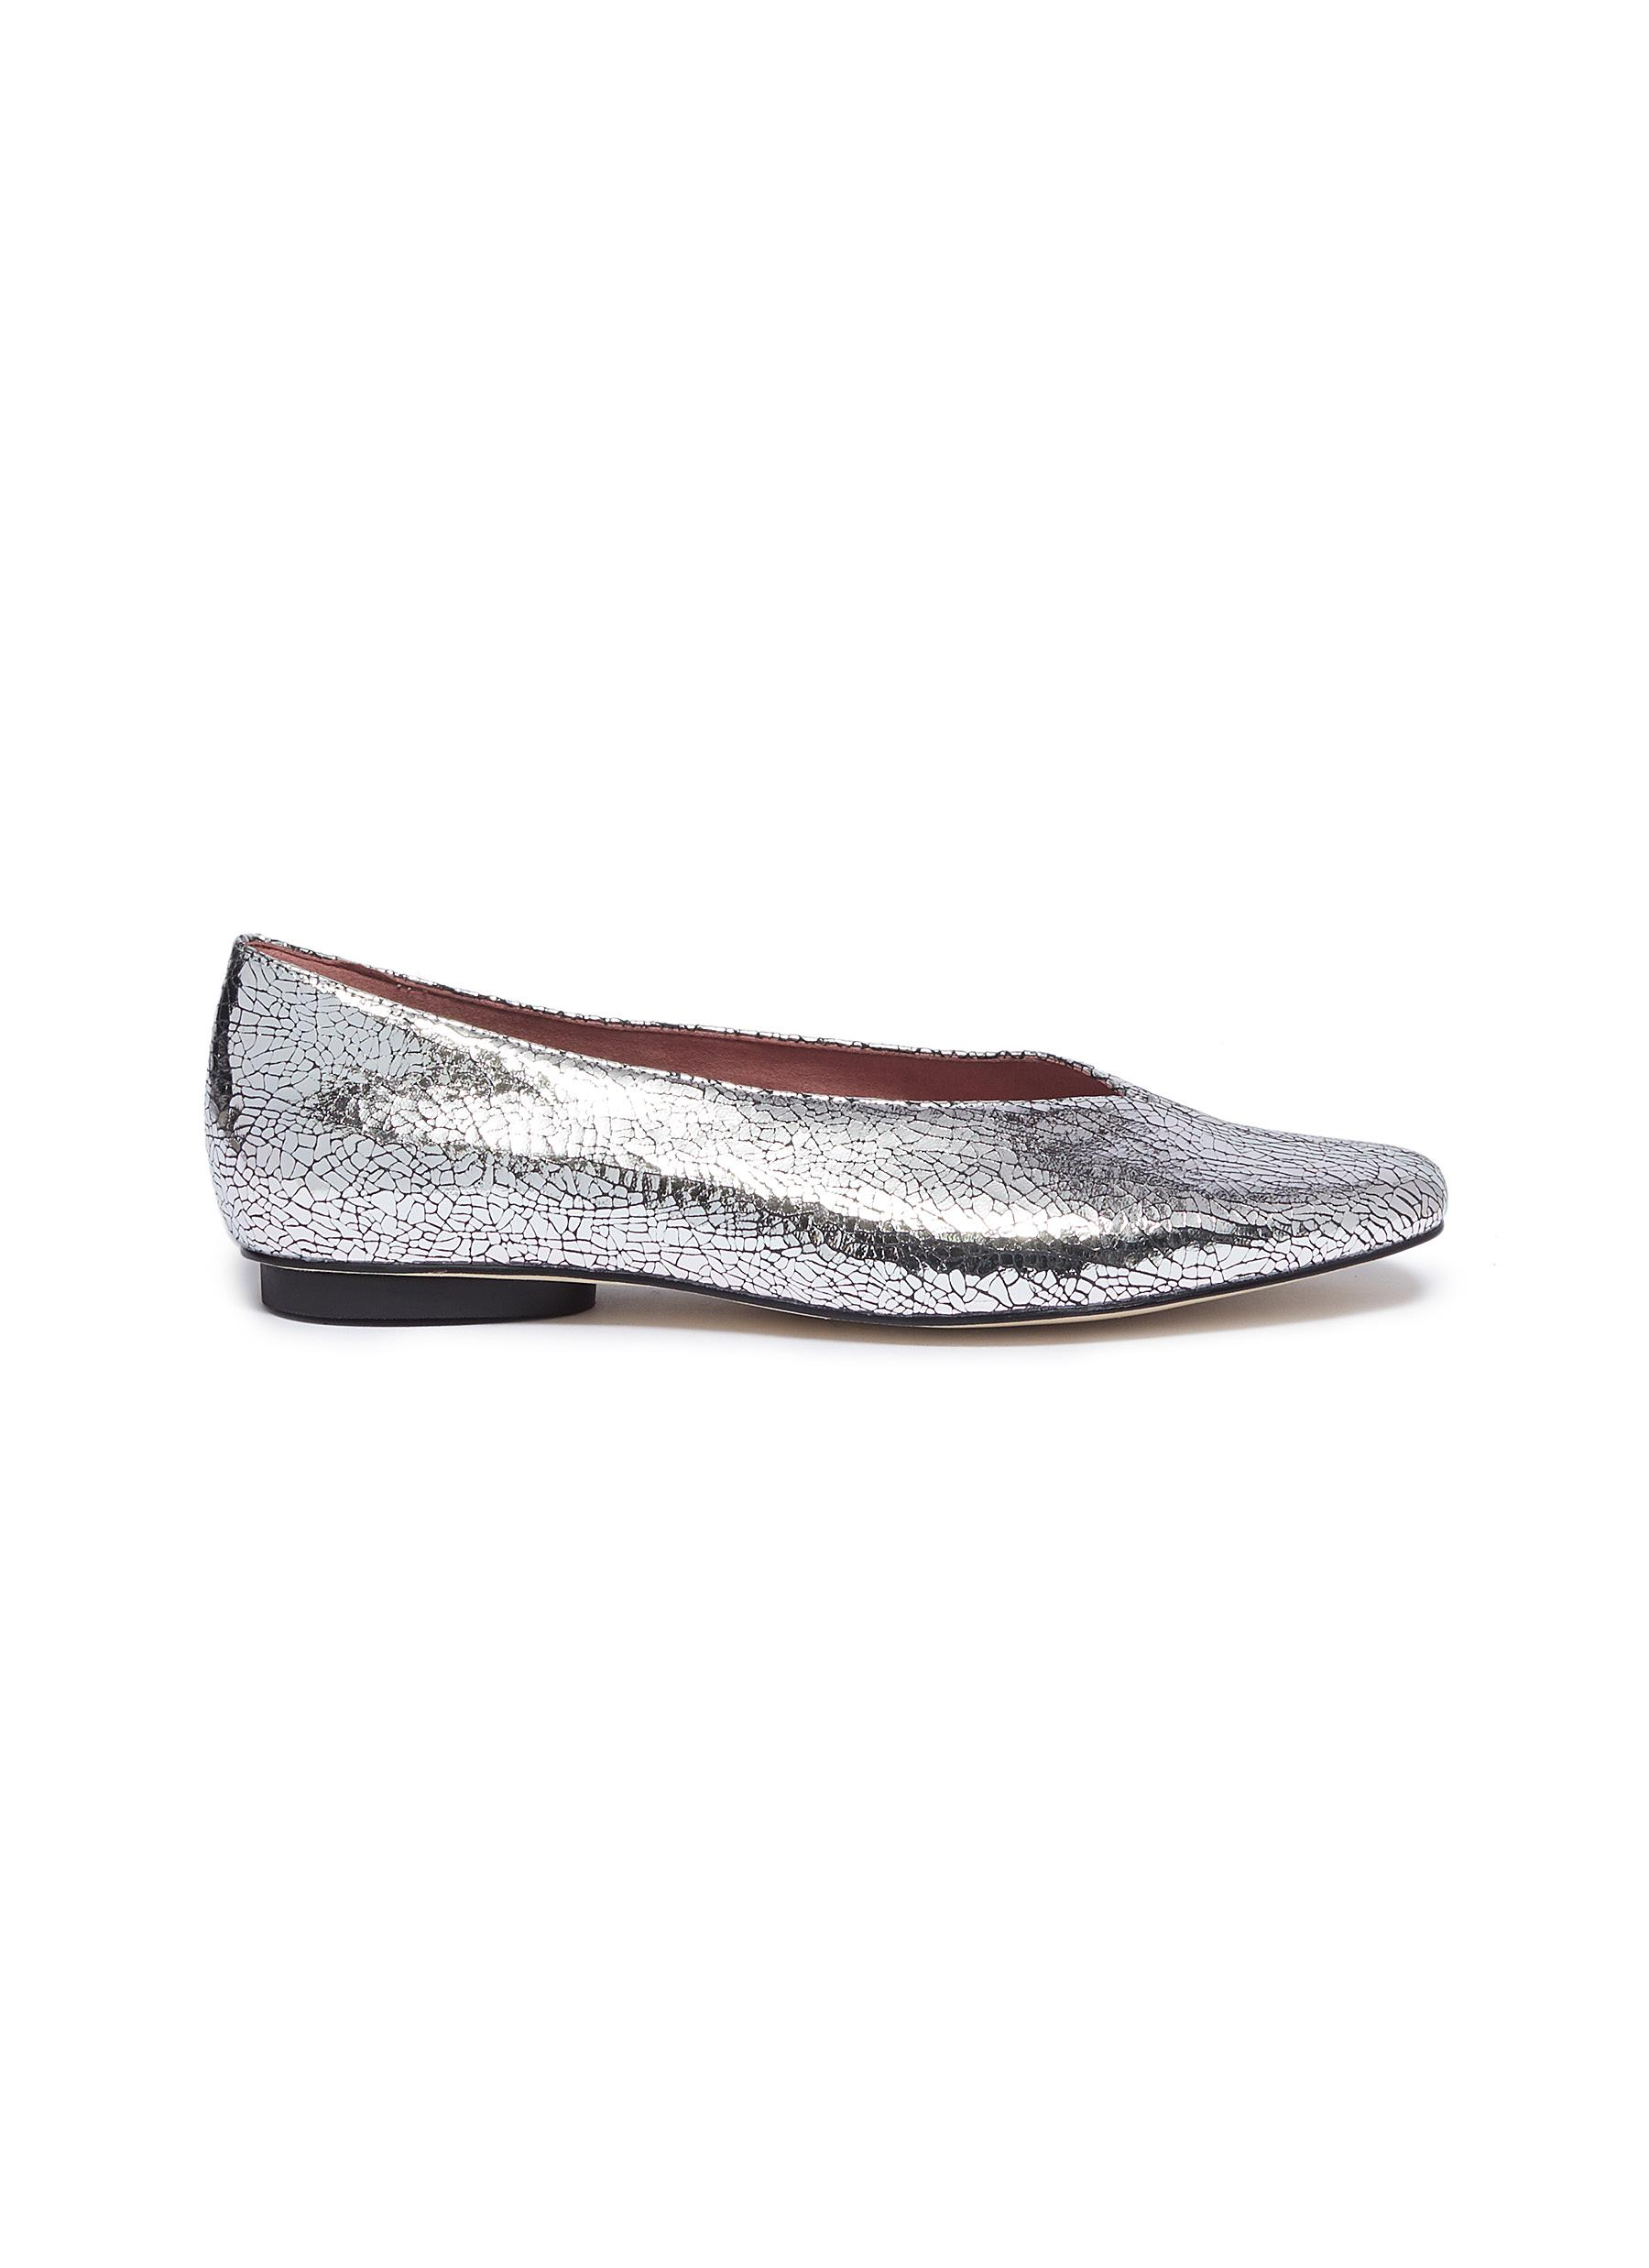 Abe choked-up metallic leather flats by Pedder Red